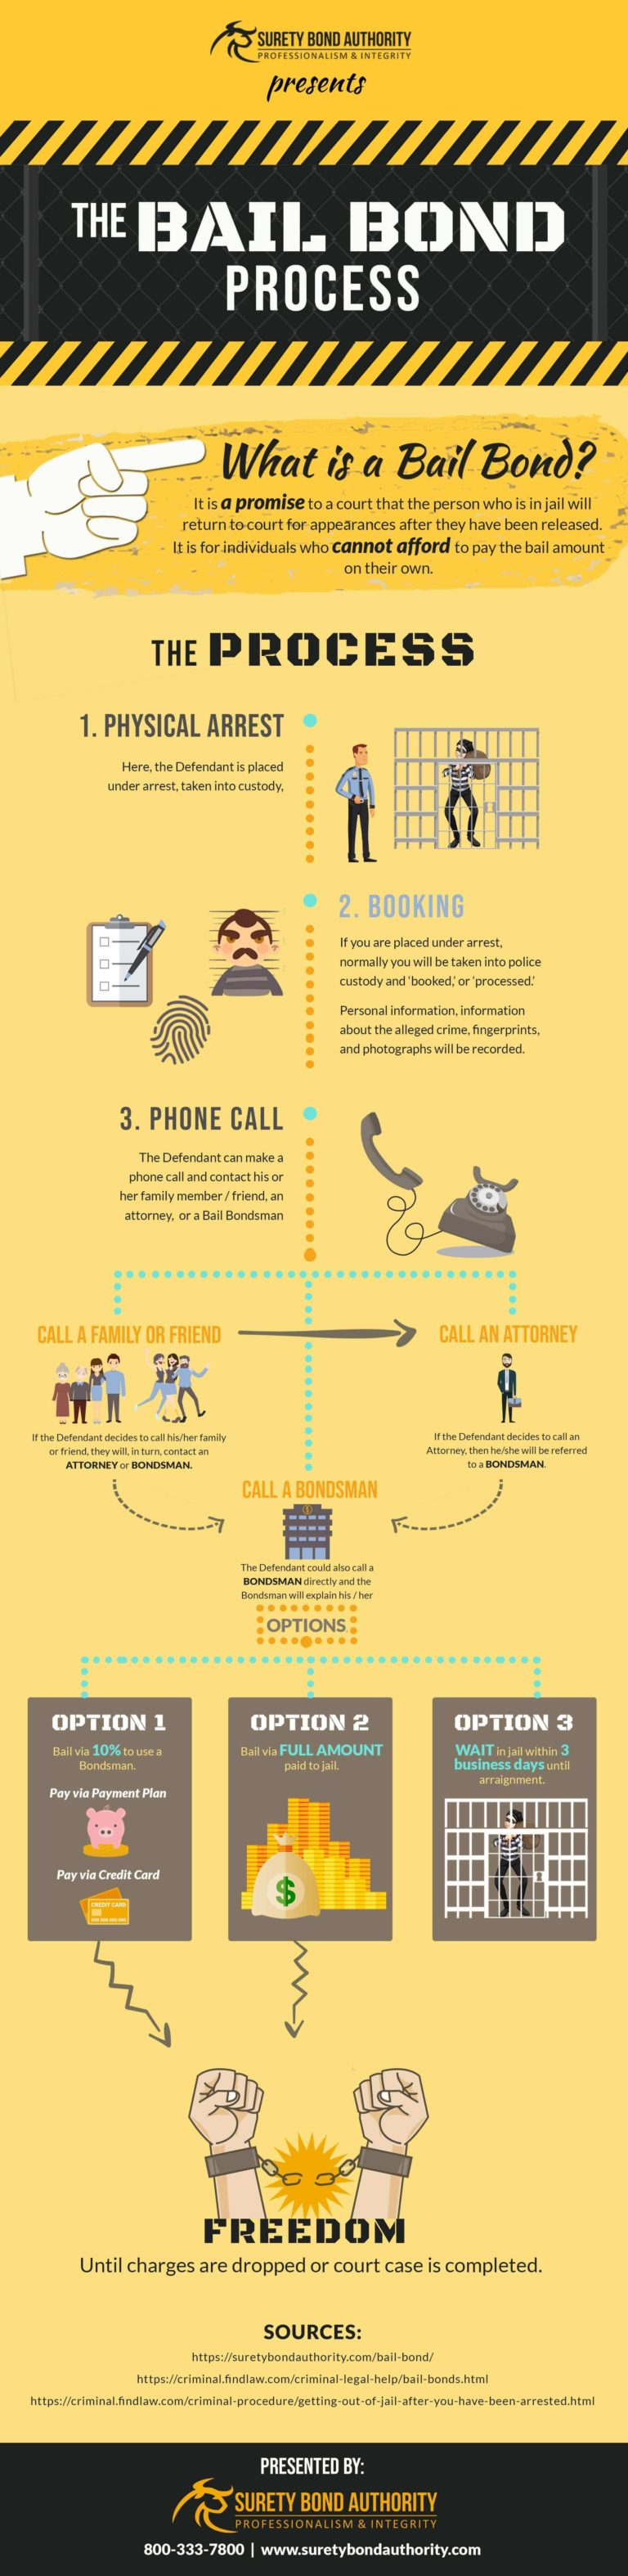 Bail Bond Process Infographic